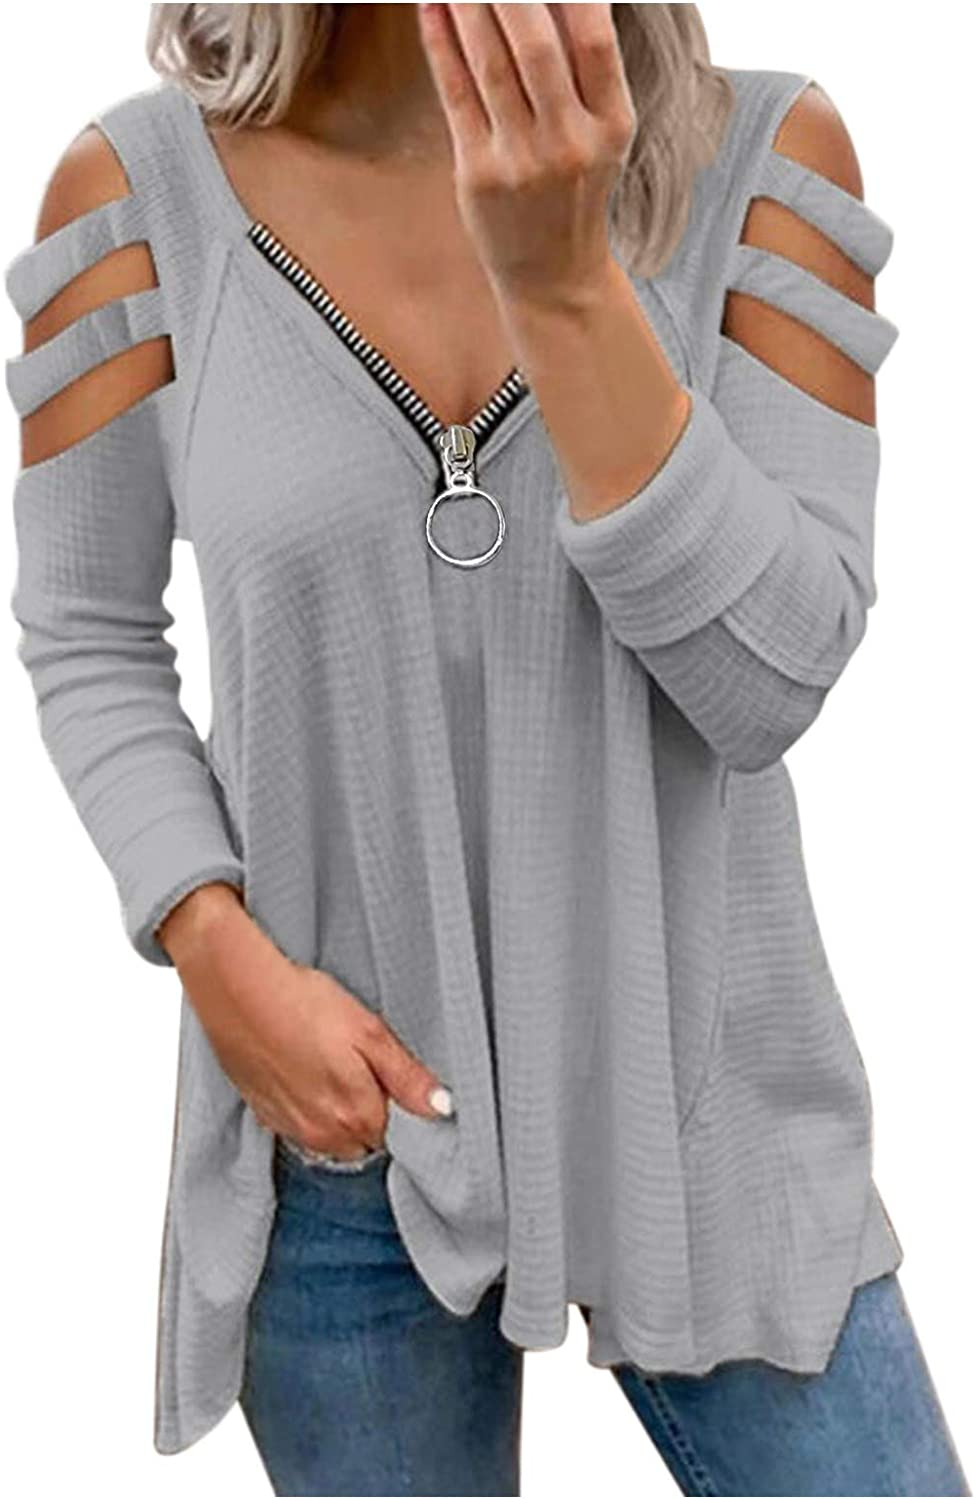 Women's Cold Shoulder Tops, V Neck Long Sleeve Casual Loose Fit T Shirts Comfy Blouses Tee with Zipper